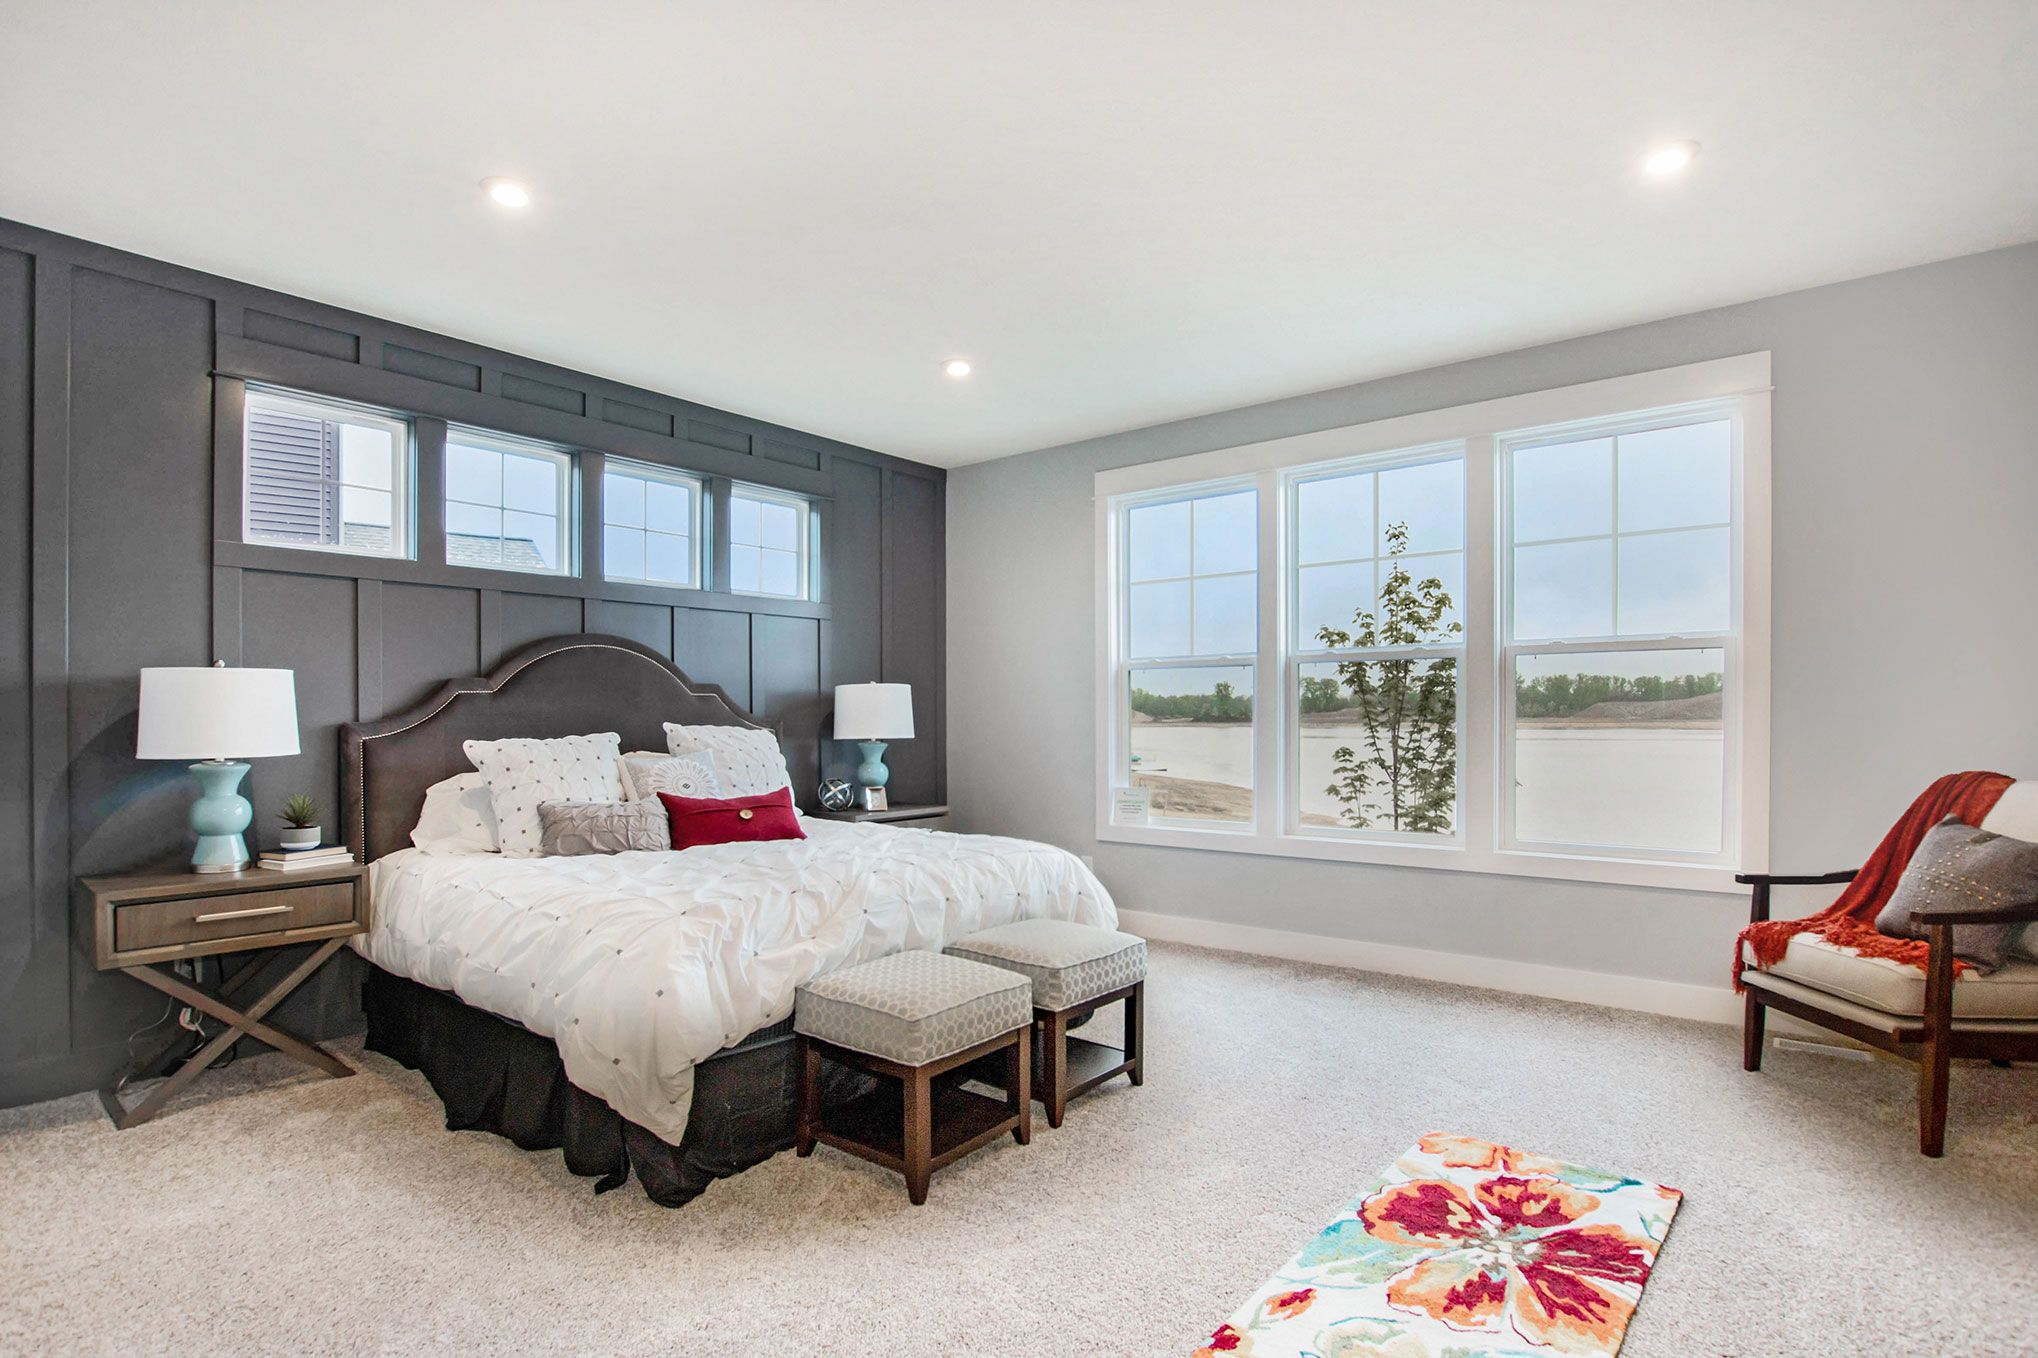 Bedroom featured in The Birkshire By Eastbrook Homes Inc. in Lansing, MI